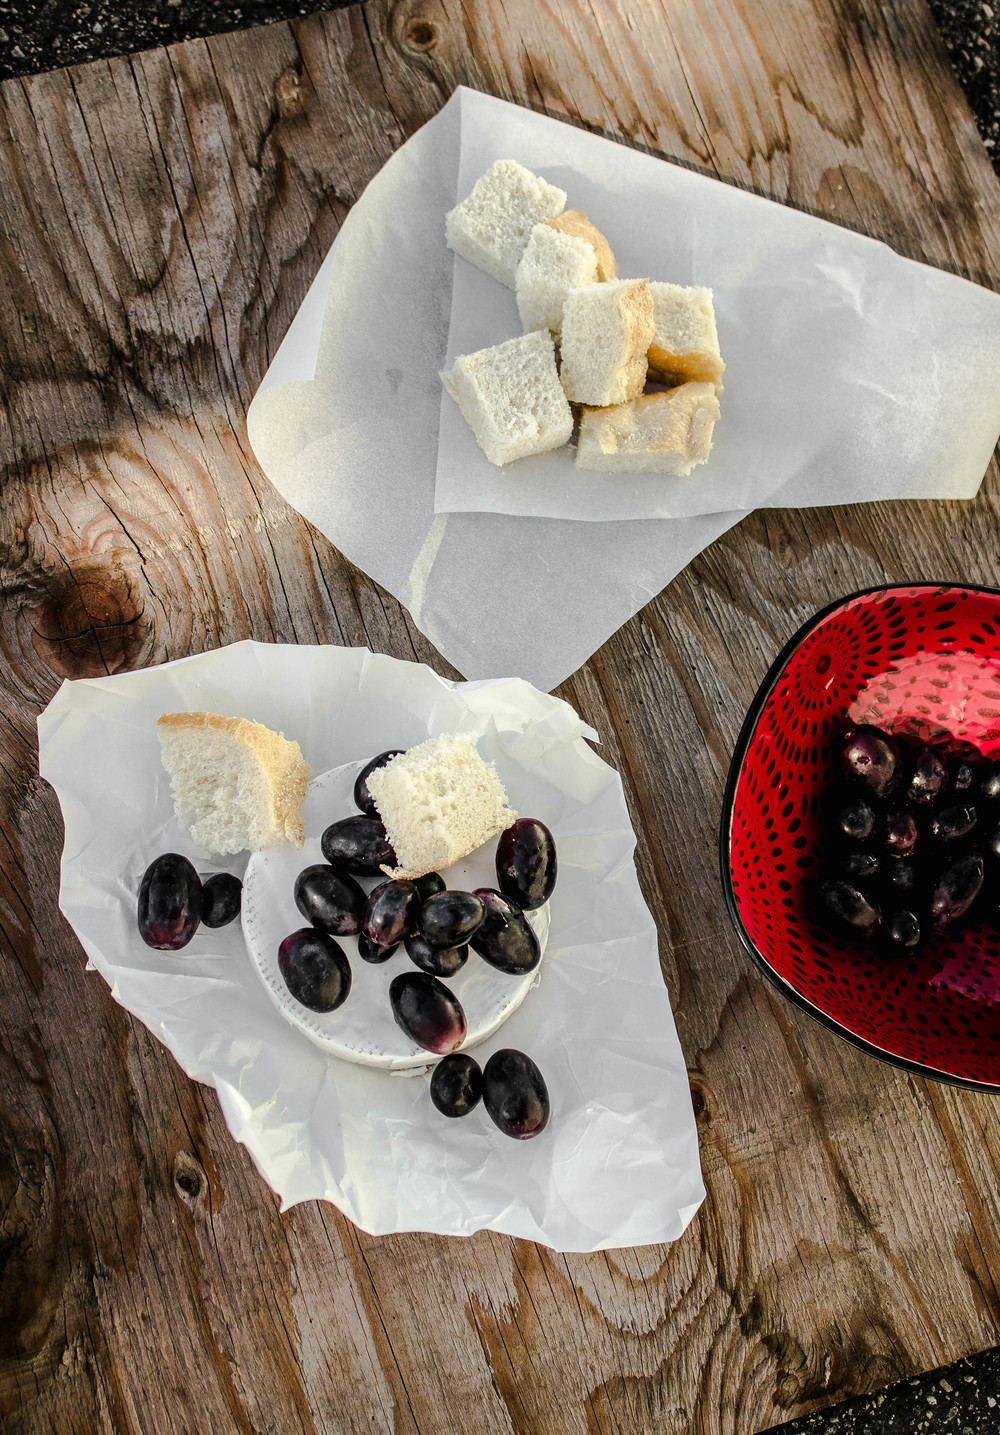 Brie bake with grapes and sourdough appetizer | fit for the soul